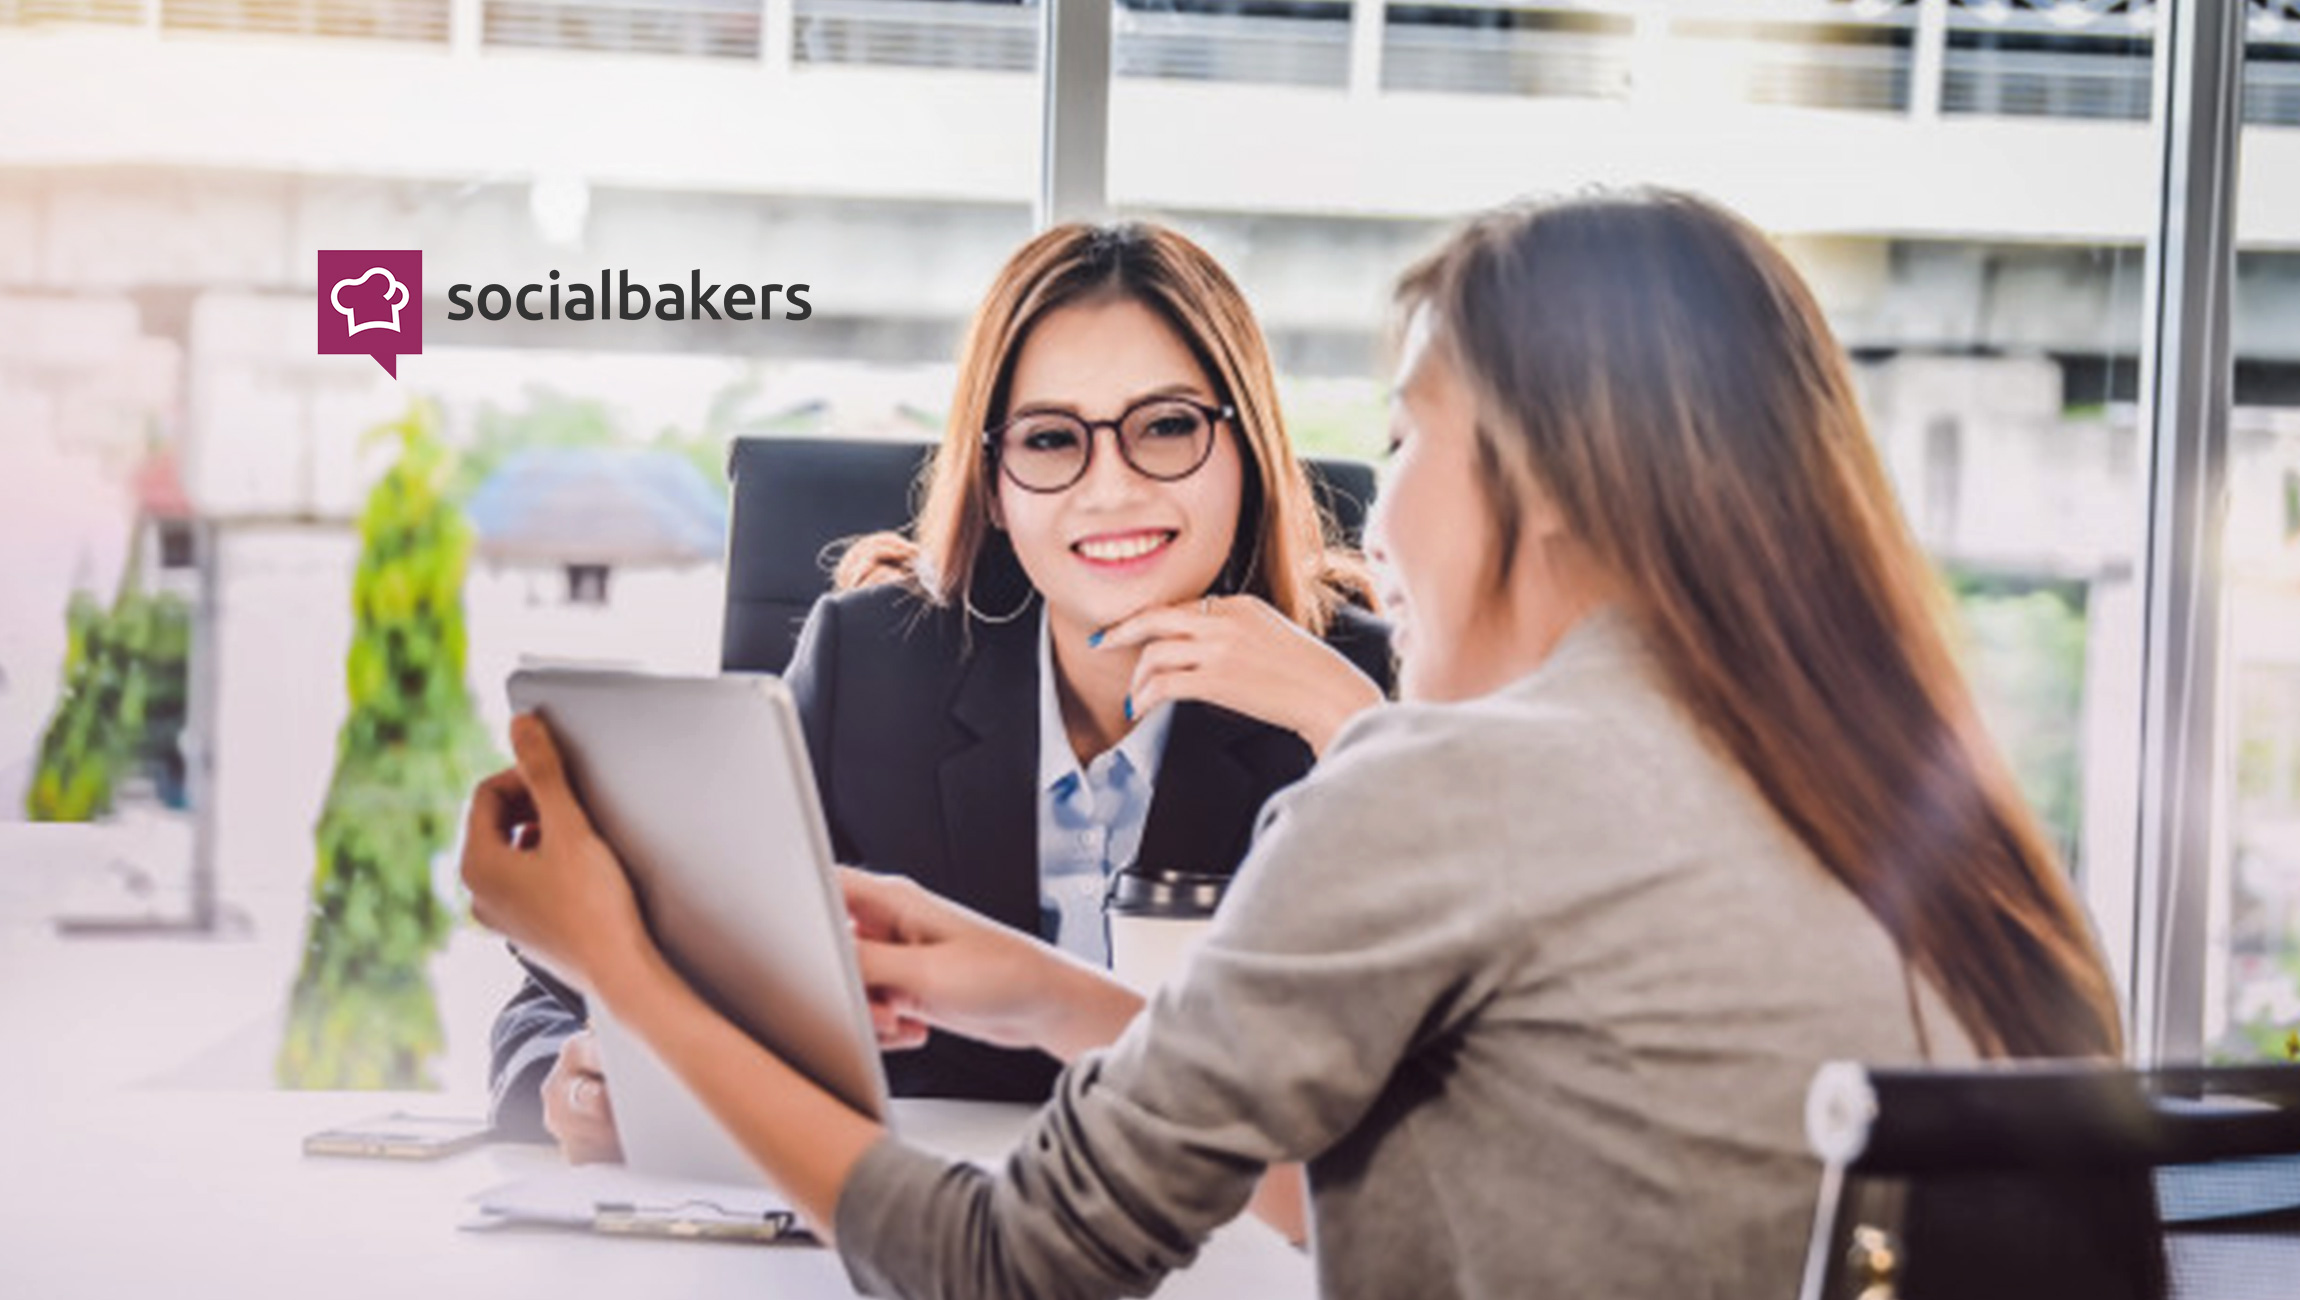 La Redoute Selected Socialbakers to Increase Purchase Intention From Campaign by 40% With an Audience-First Social Strategy